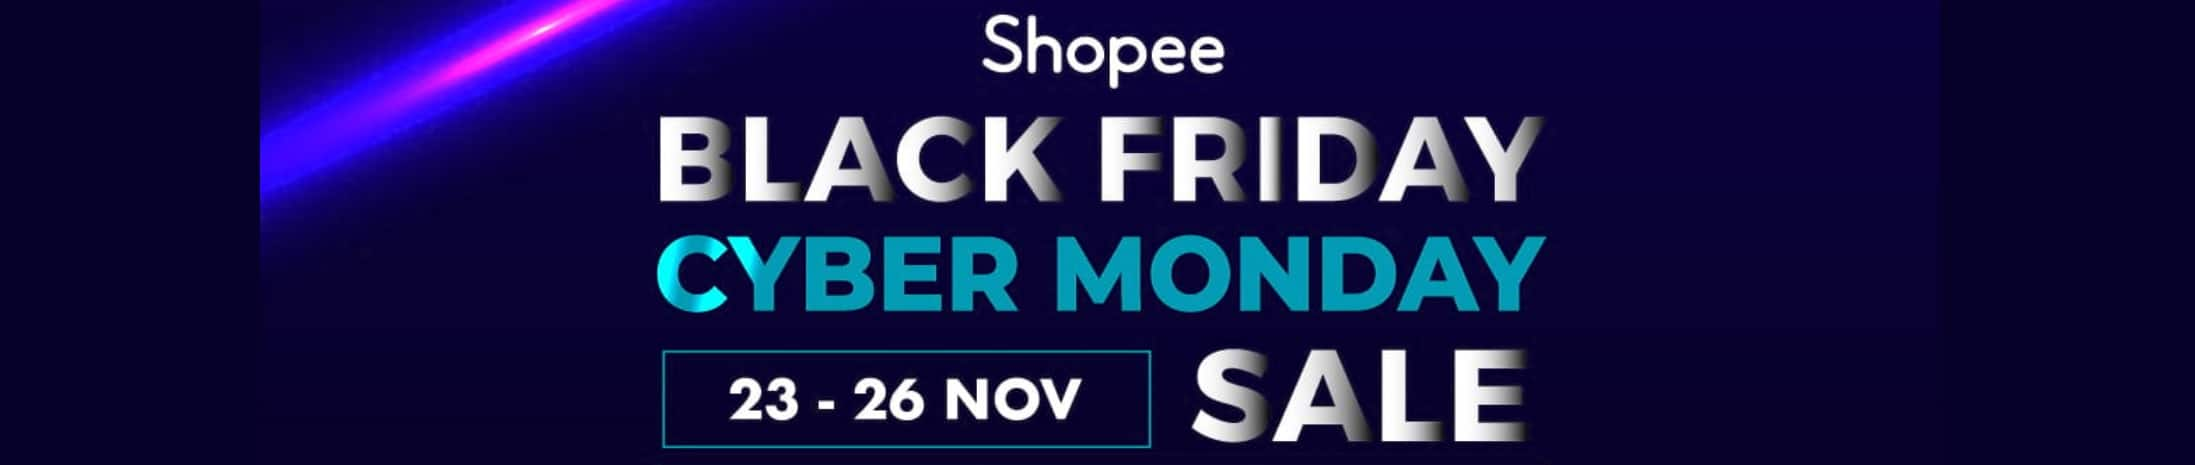 Shopee Black Friday Cyber Monday